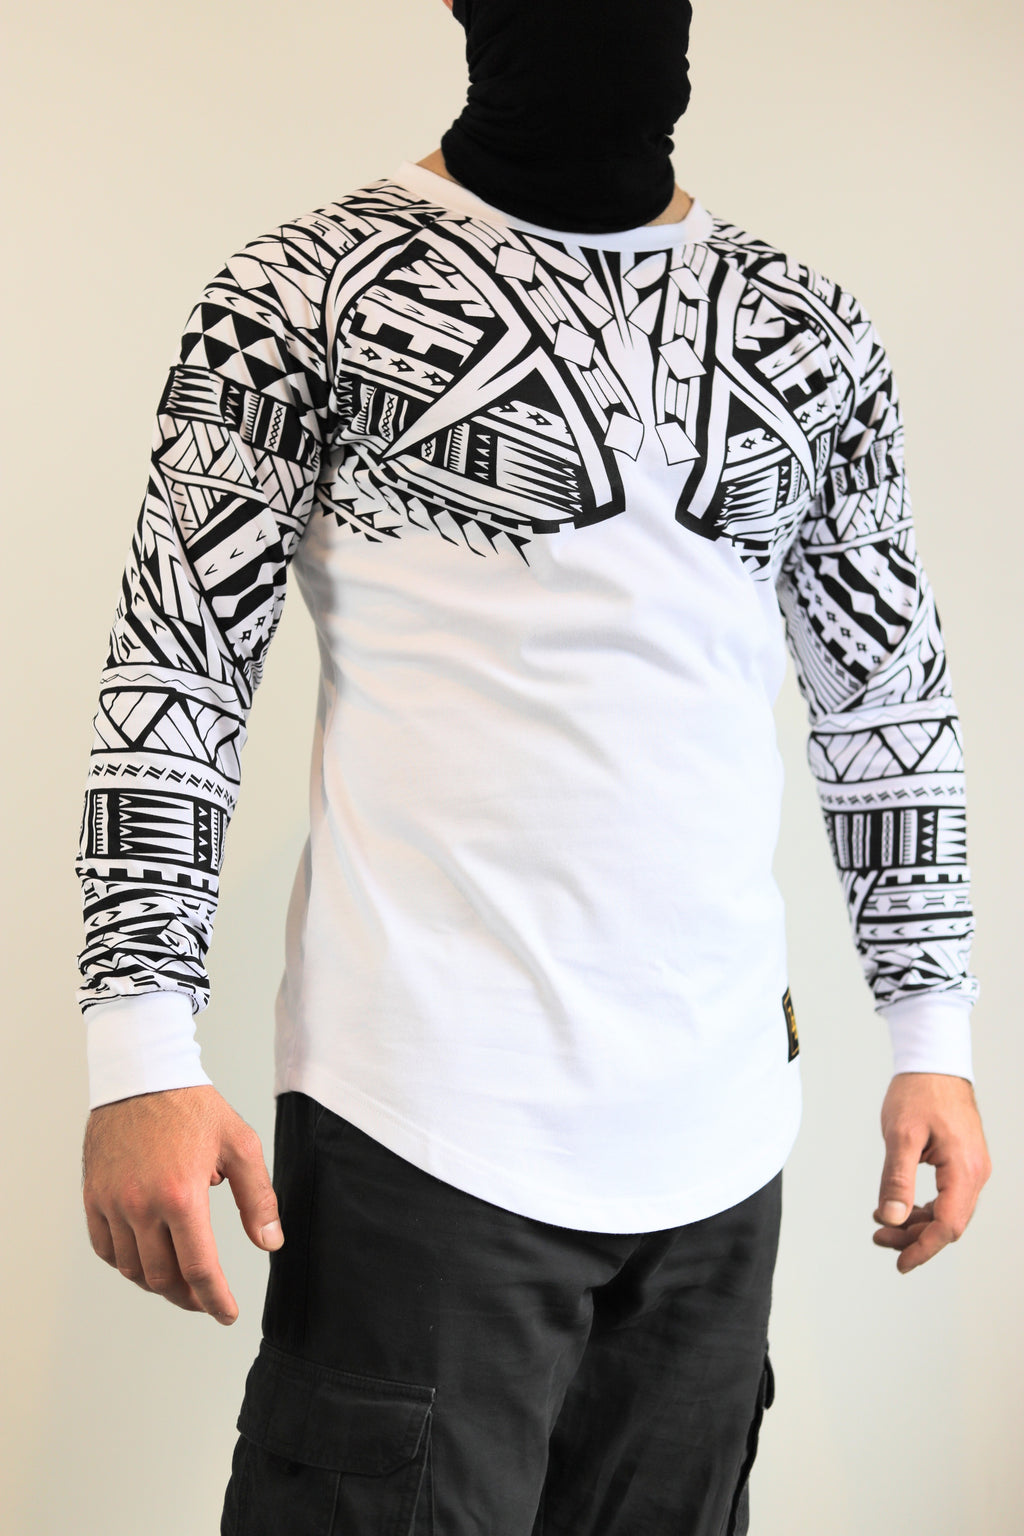 Heavyweight Premium Unisex WHITE Long Sleeve